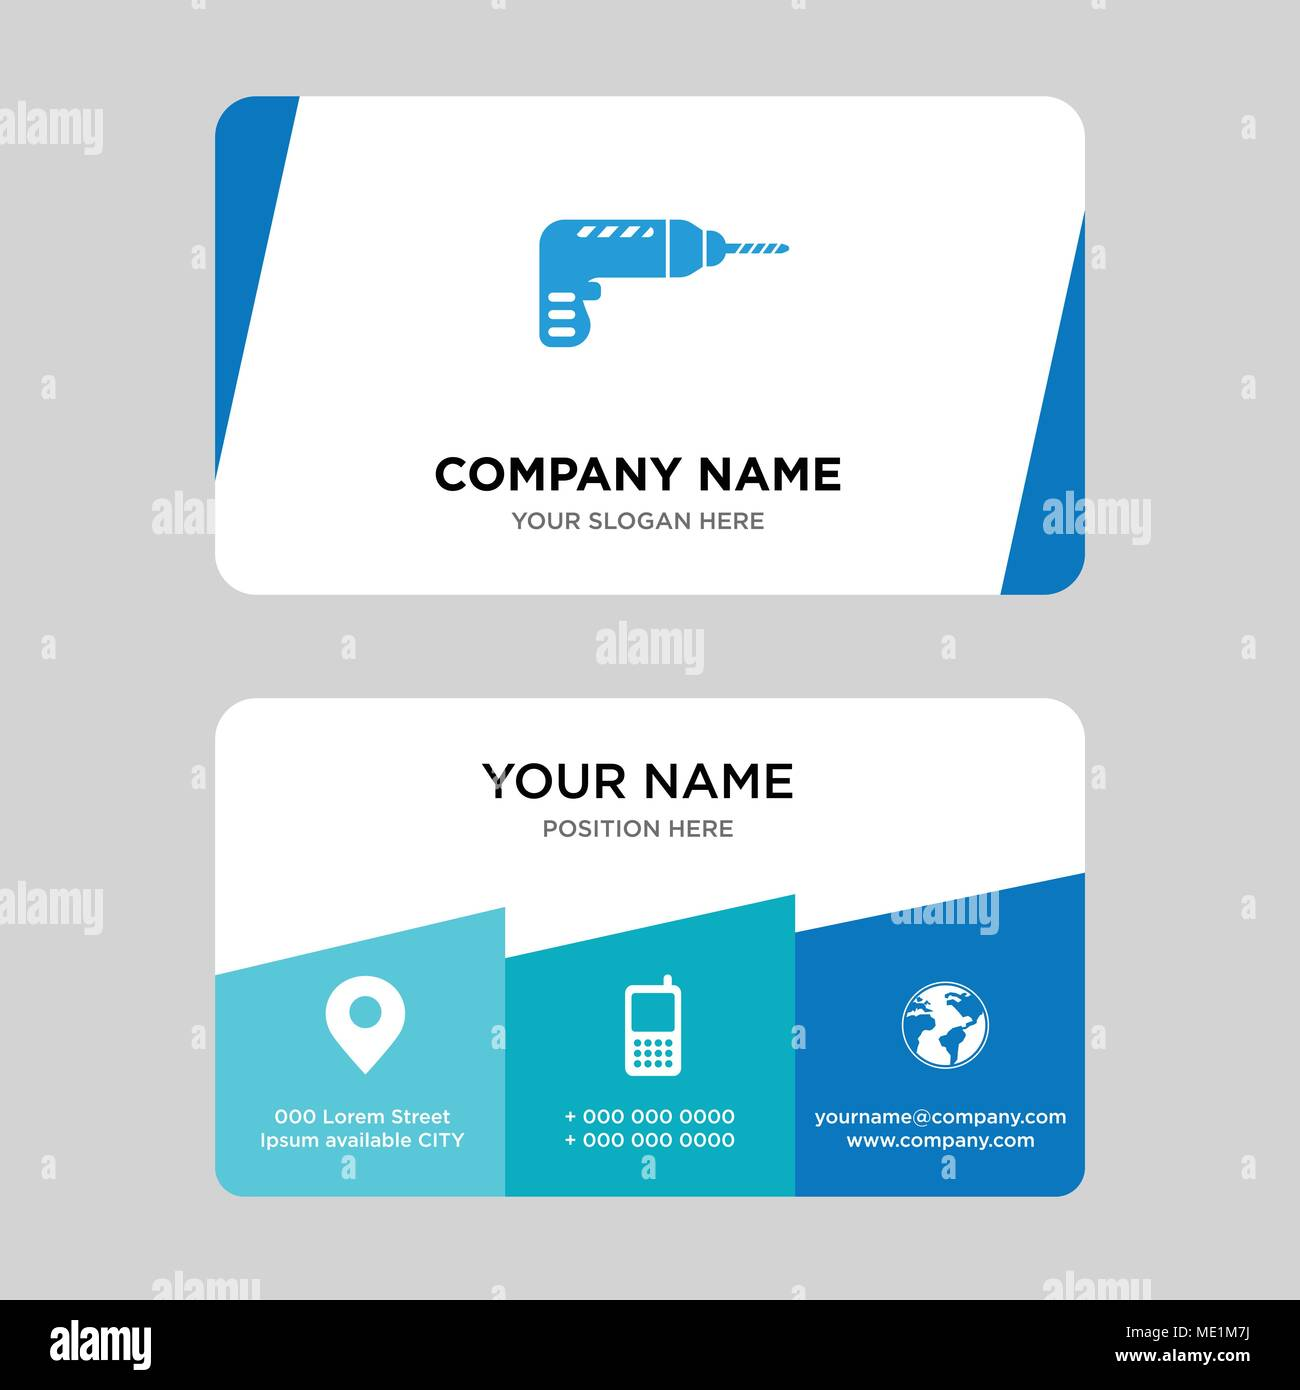 Drill Business Card Design Template Visiting For Your